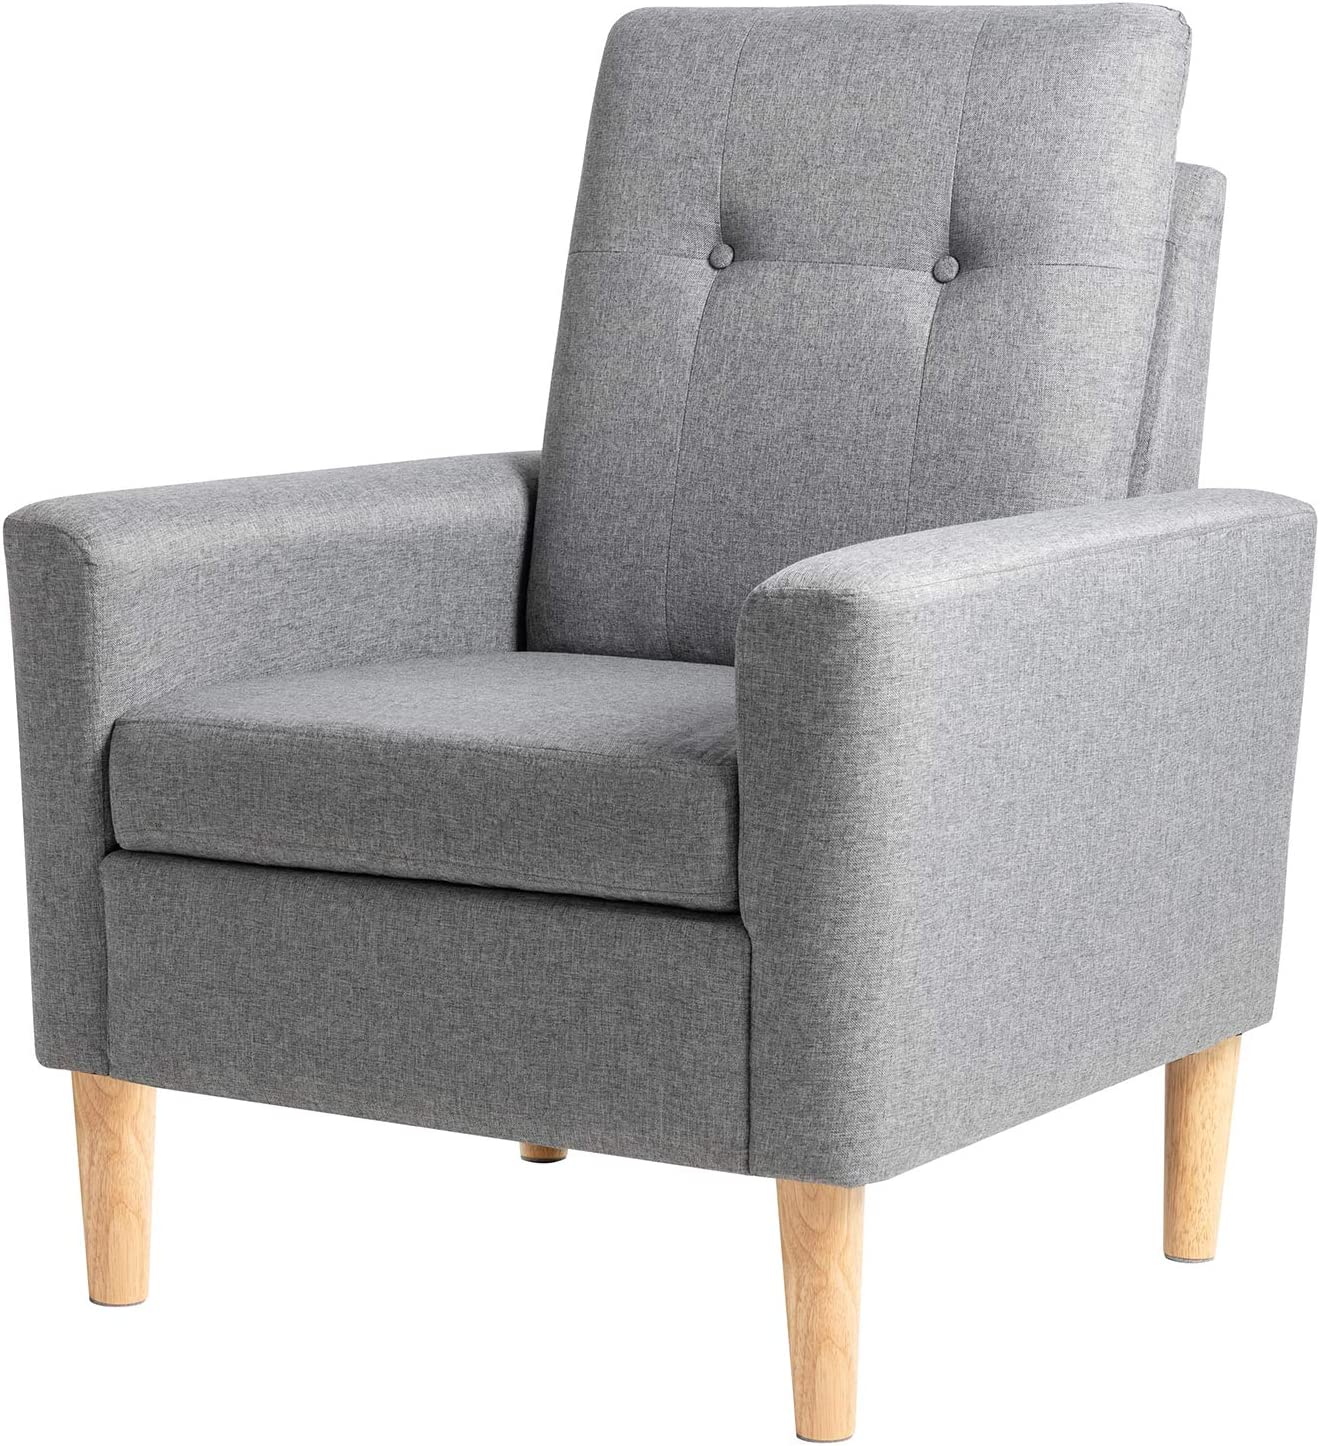 Office Comfy Upholstered Room Corner Reading Chair For Living Room Grey Bedroom Linen Single Sofa Fabric Accent Arm Chair With Solid Wood Legs Shintenchi Modern Accent Chair Small Living Space Furniture Living